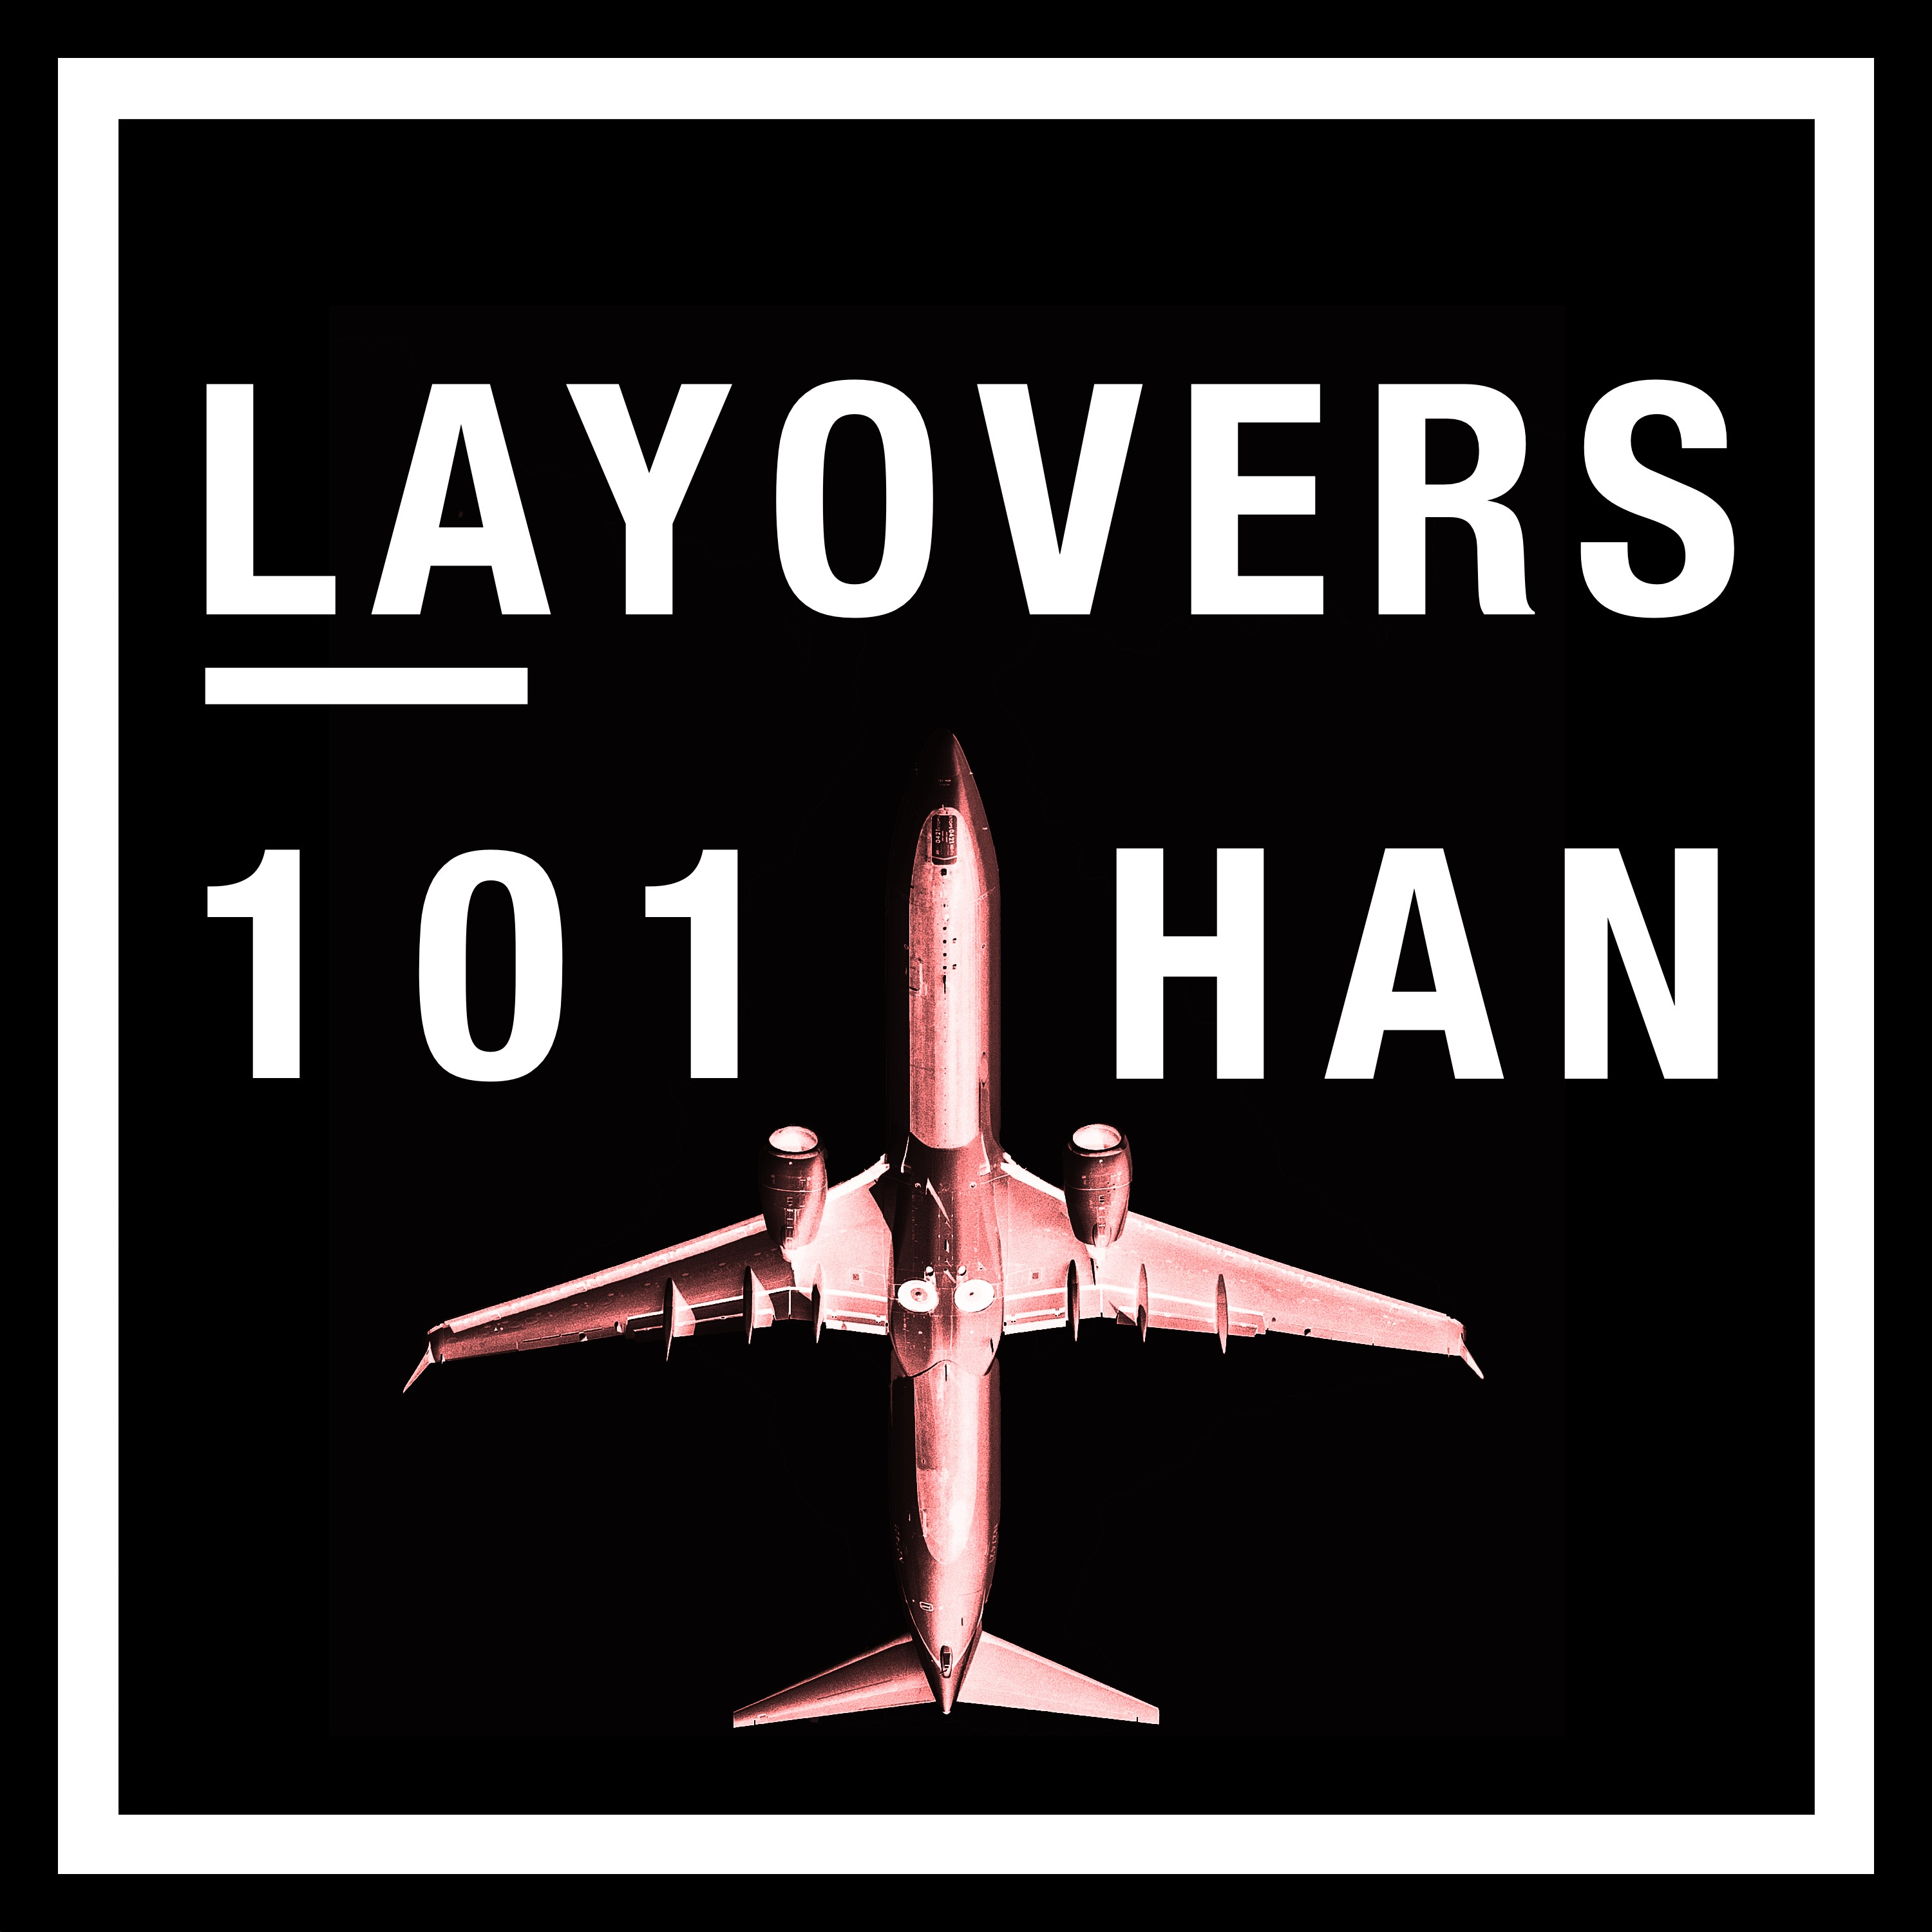 101 HAN - Emirates plans, Vietnam meat, Miles & Less, Aeromexico noise, Norwegian LHR coup